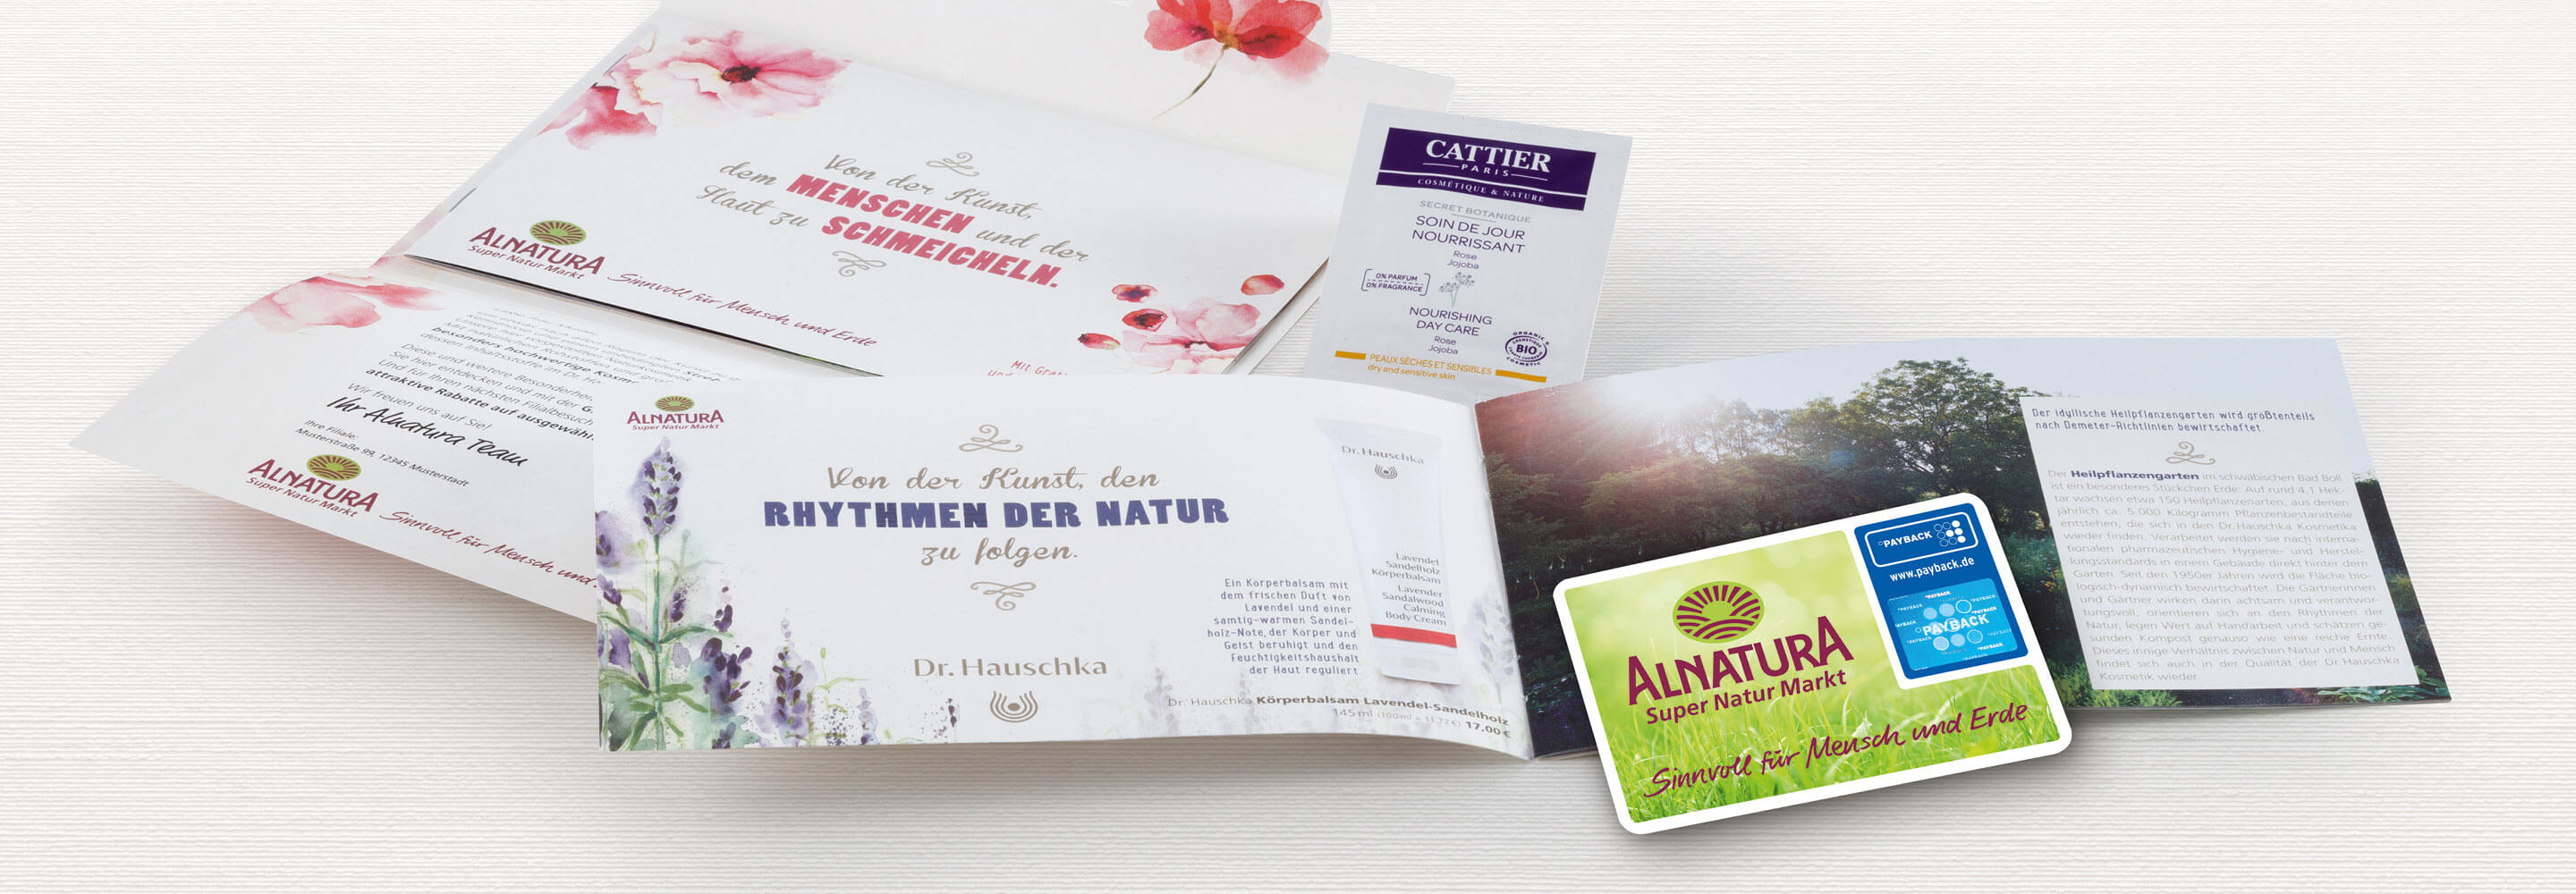 EBERLE_CASE_ALNATURA_PAYBACKMAILINGS_Header